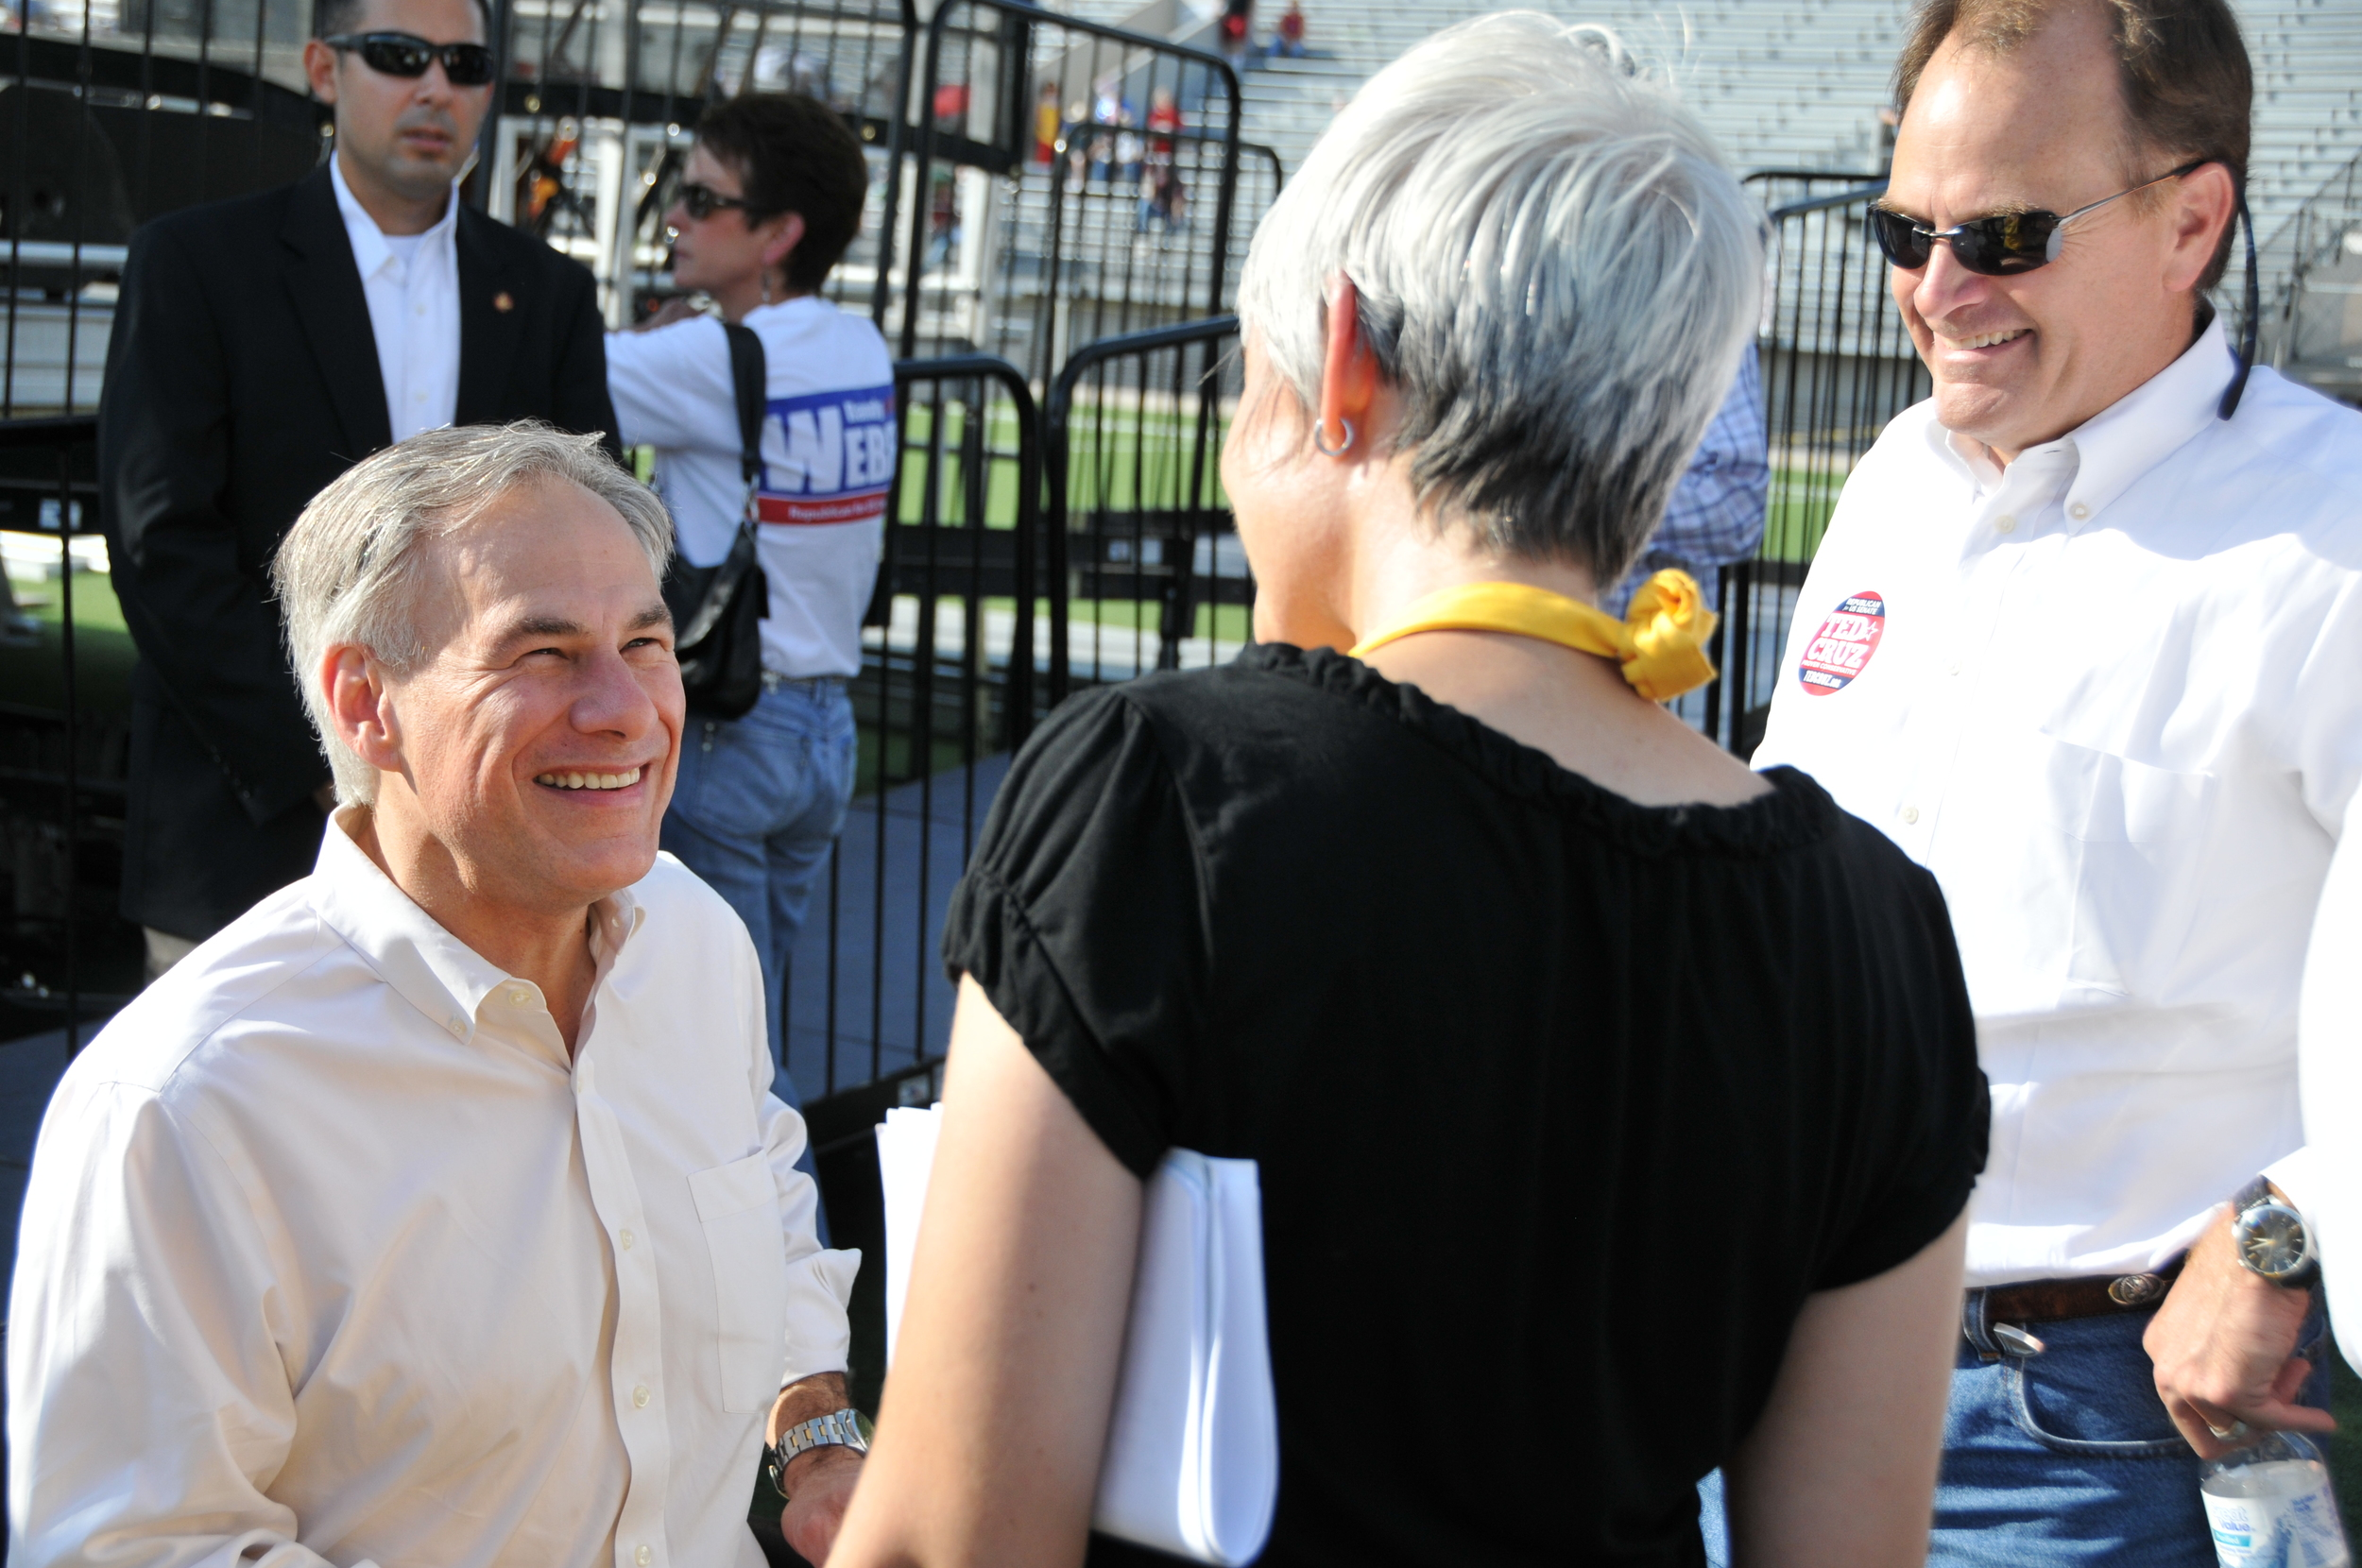 Texas Patriots PAC President Julie Turner chats with Greg Abbott and State Representative Steve Toth backstage at our rally in Conroe - November 2012.